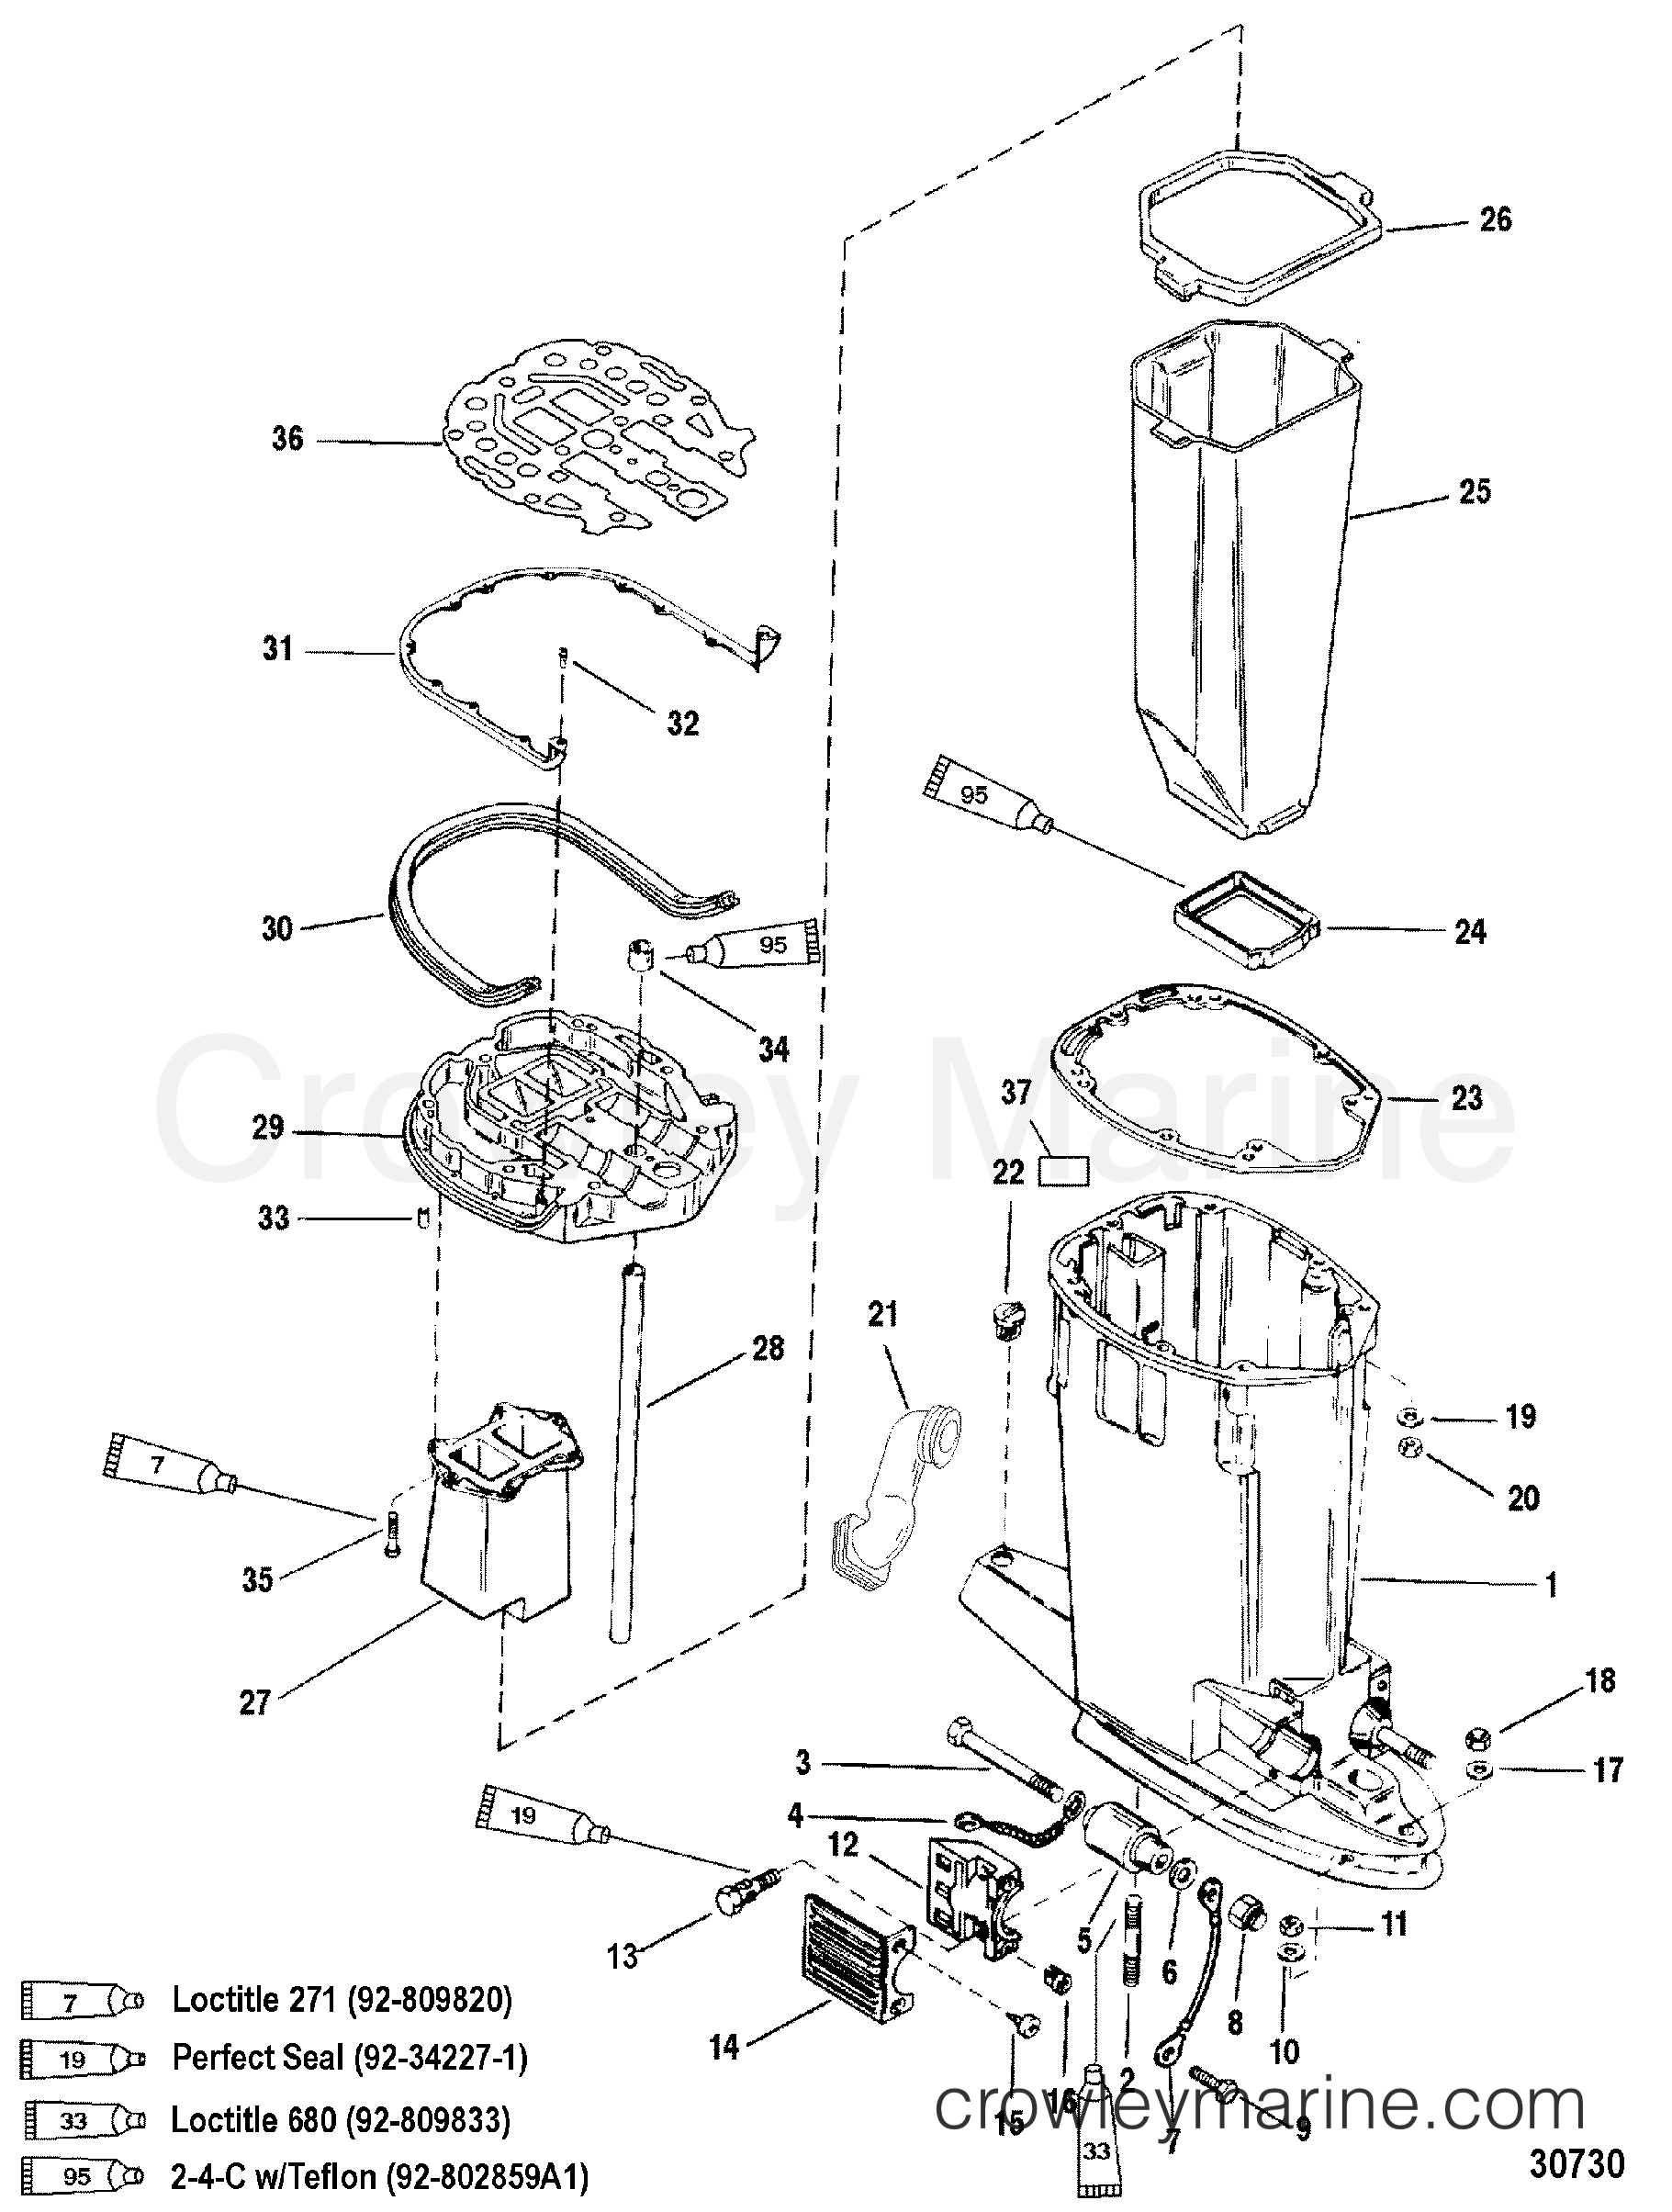 drive shaft housing and exhaust tube